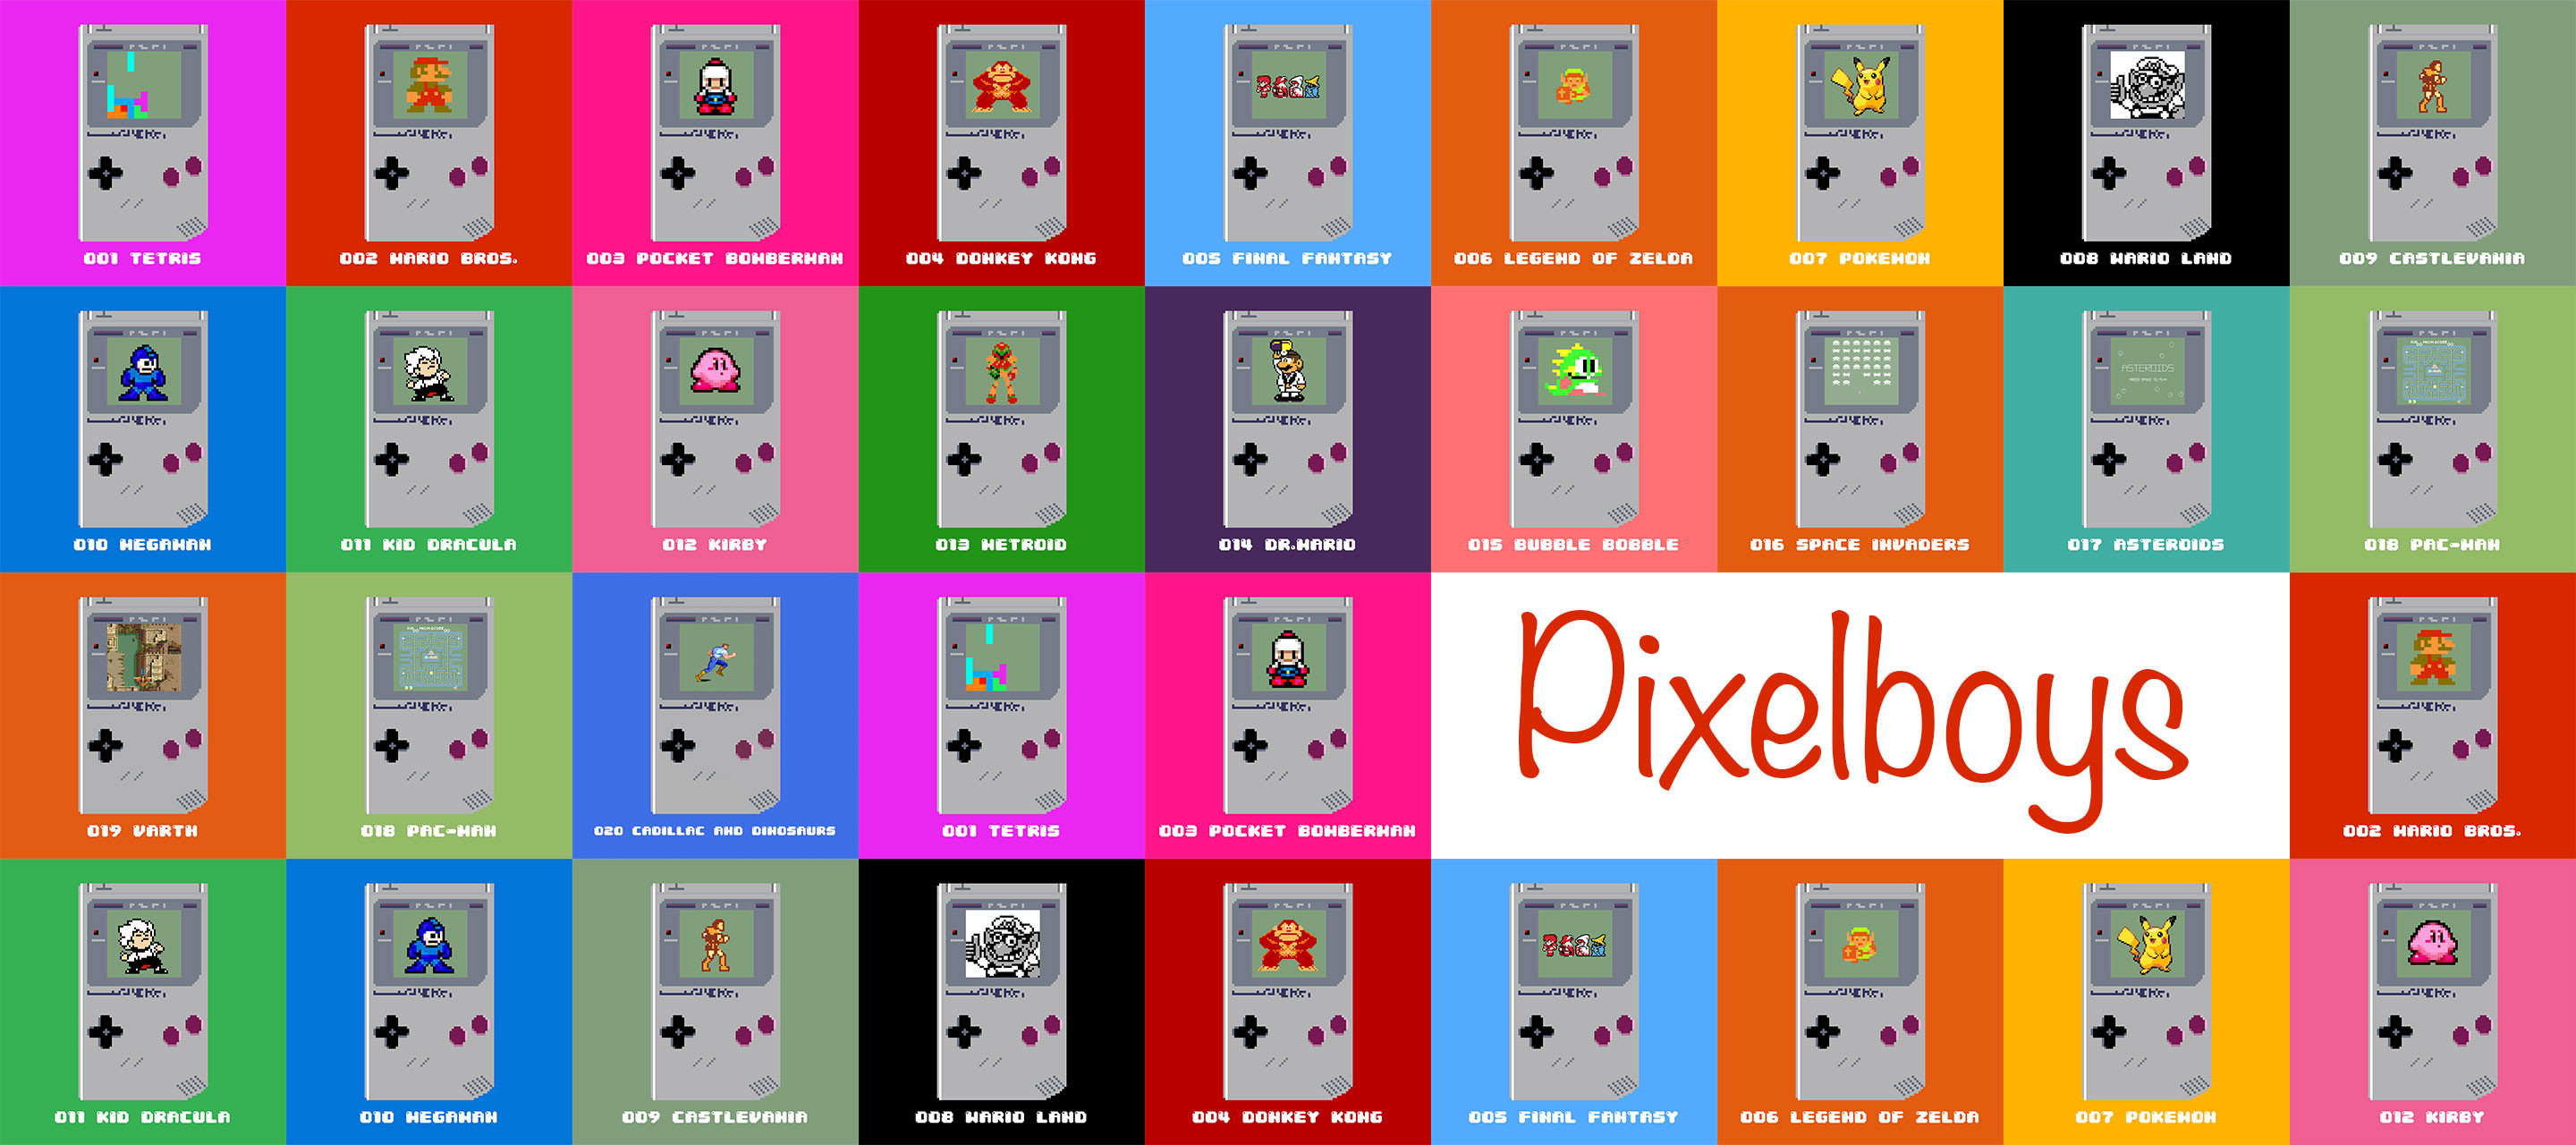 PixelBoys is a small collection of the most famous GameBoy's game from the 90s  https://opensea.io/collection/pixelboy/